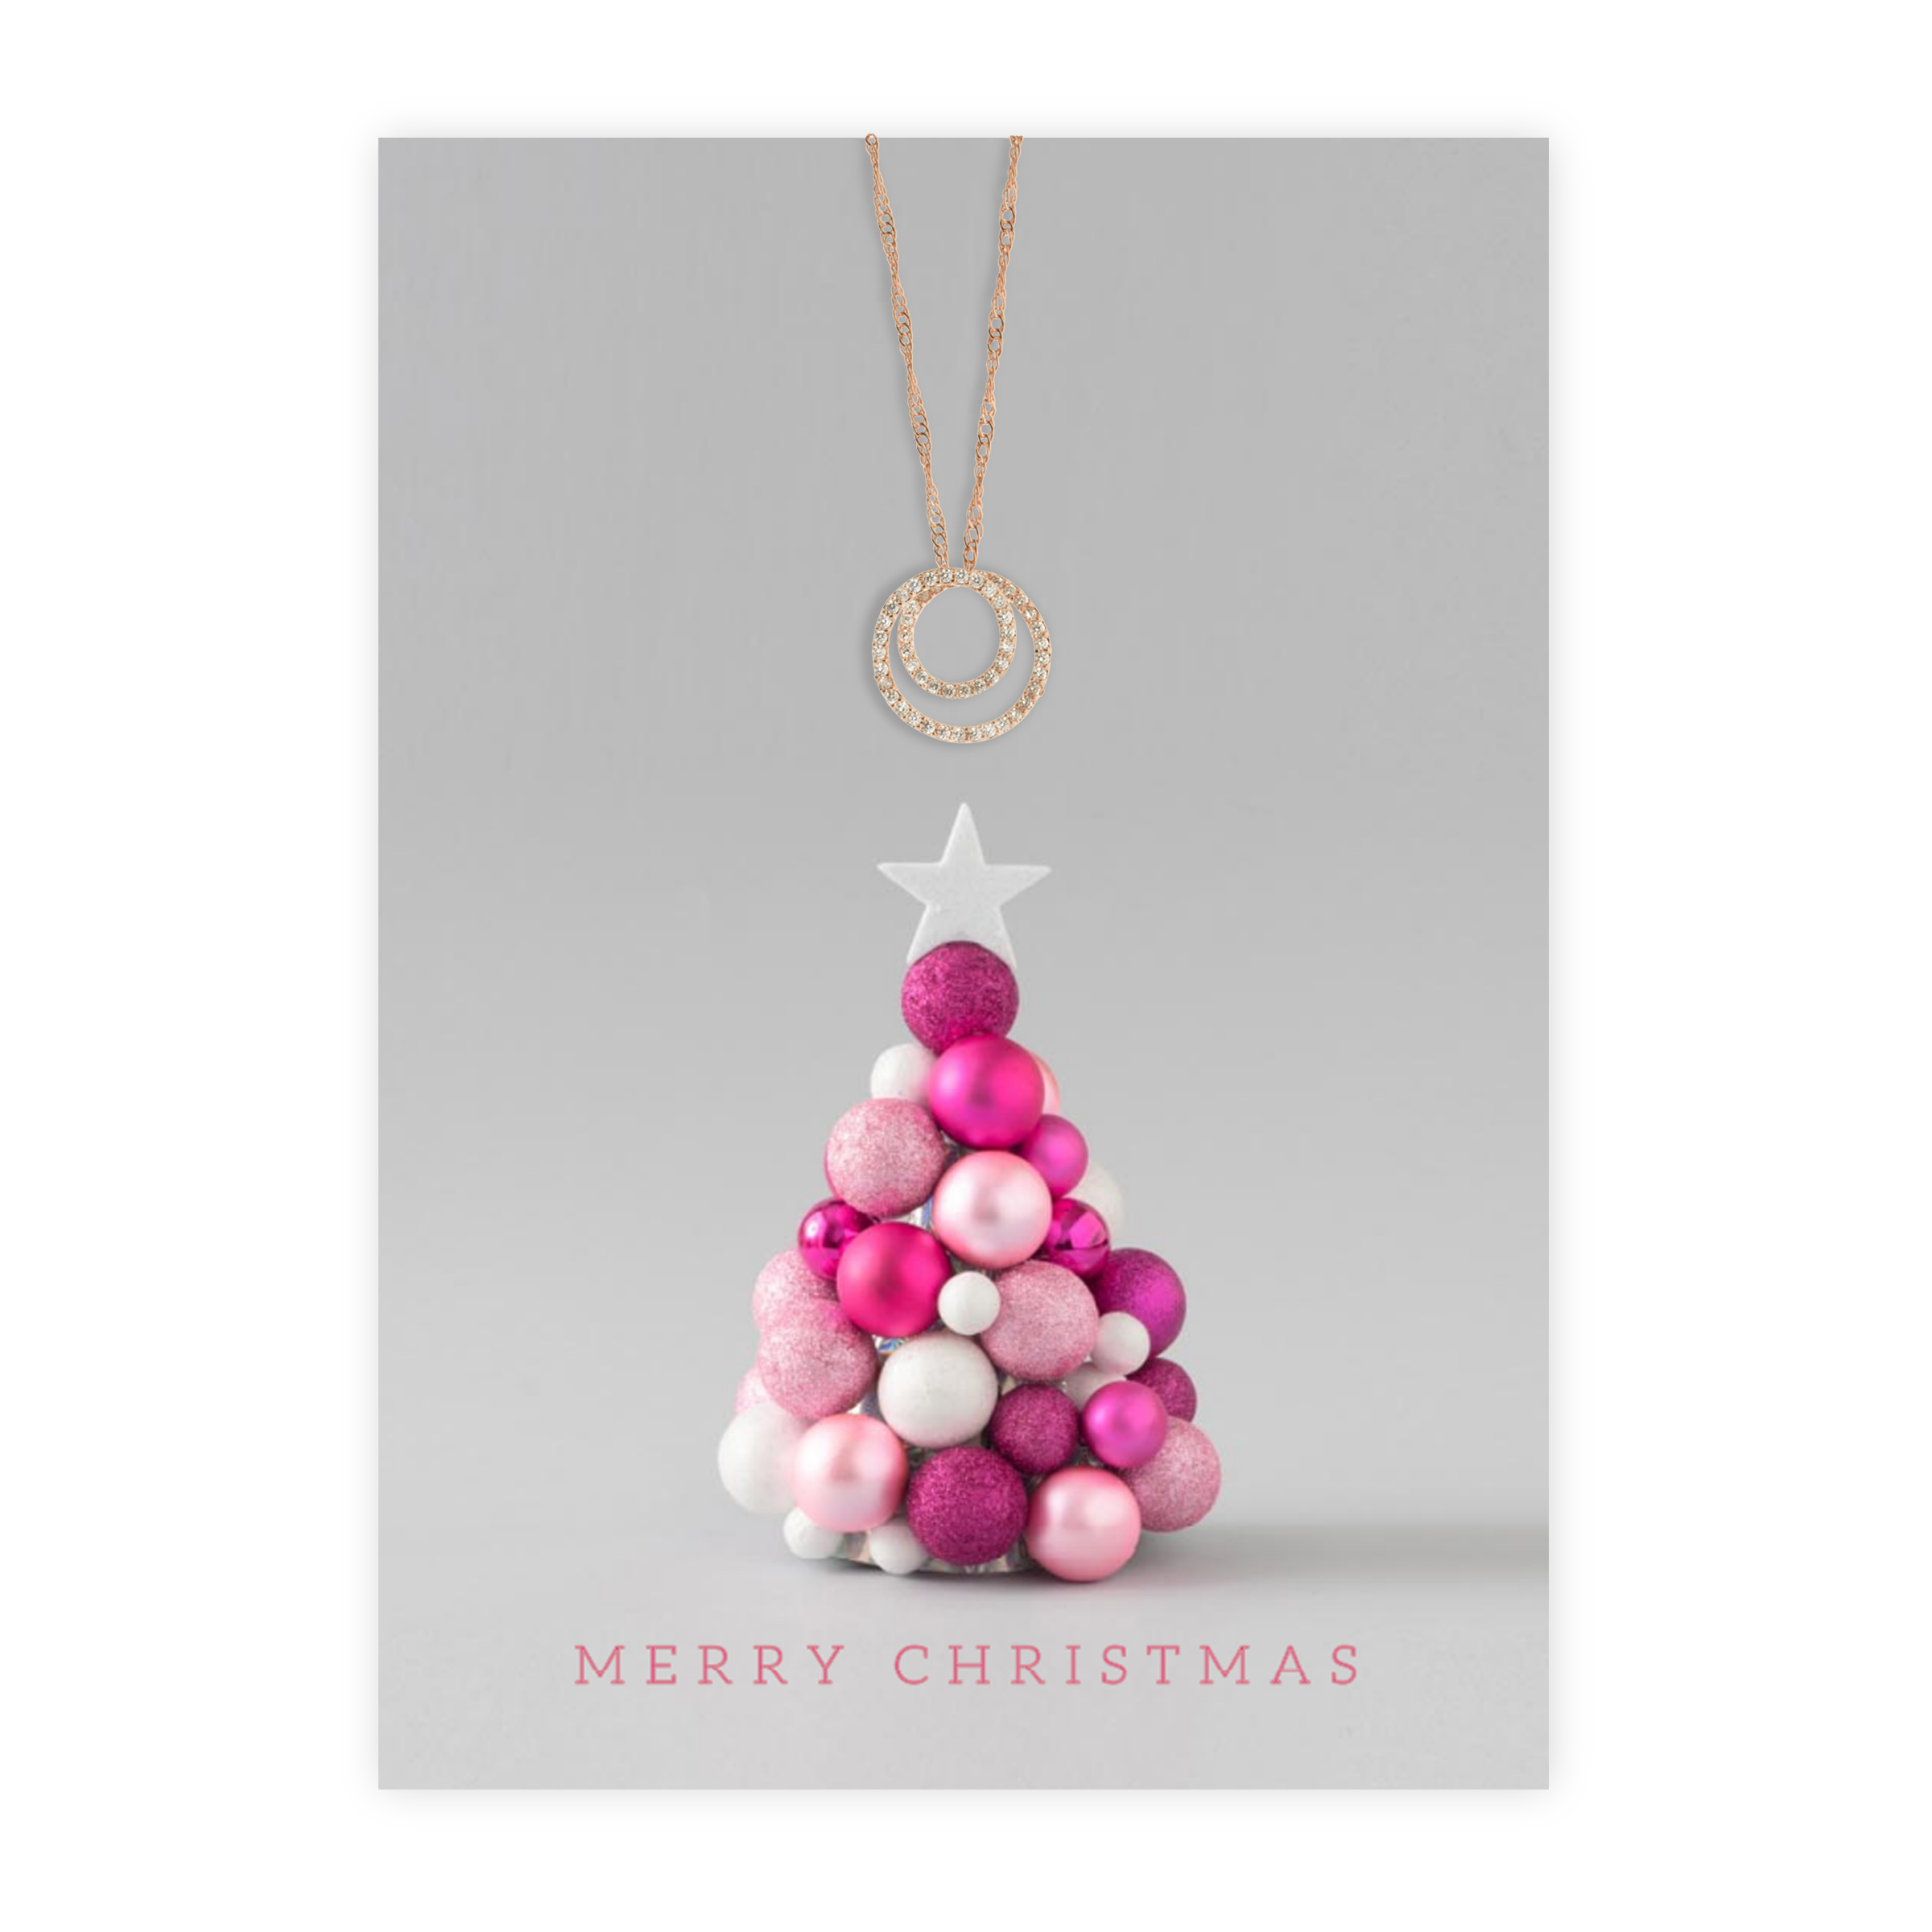 Christmas Card With Rose Gold 2 Circle N/L